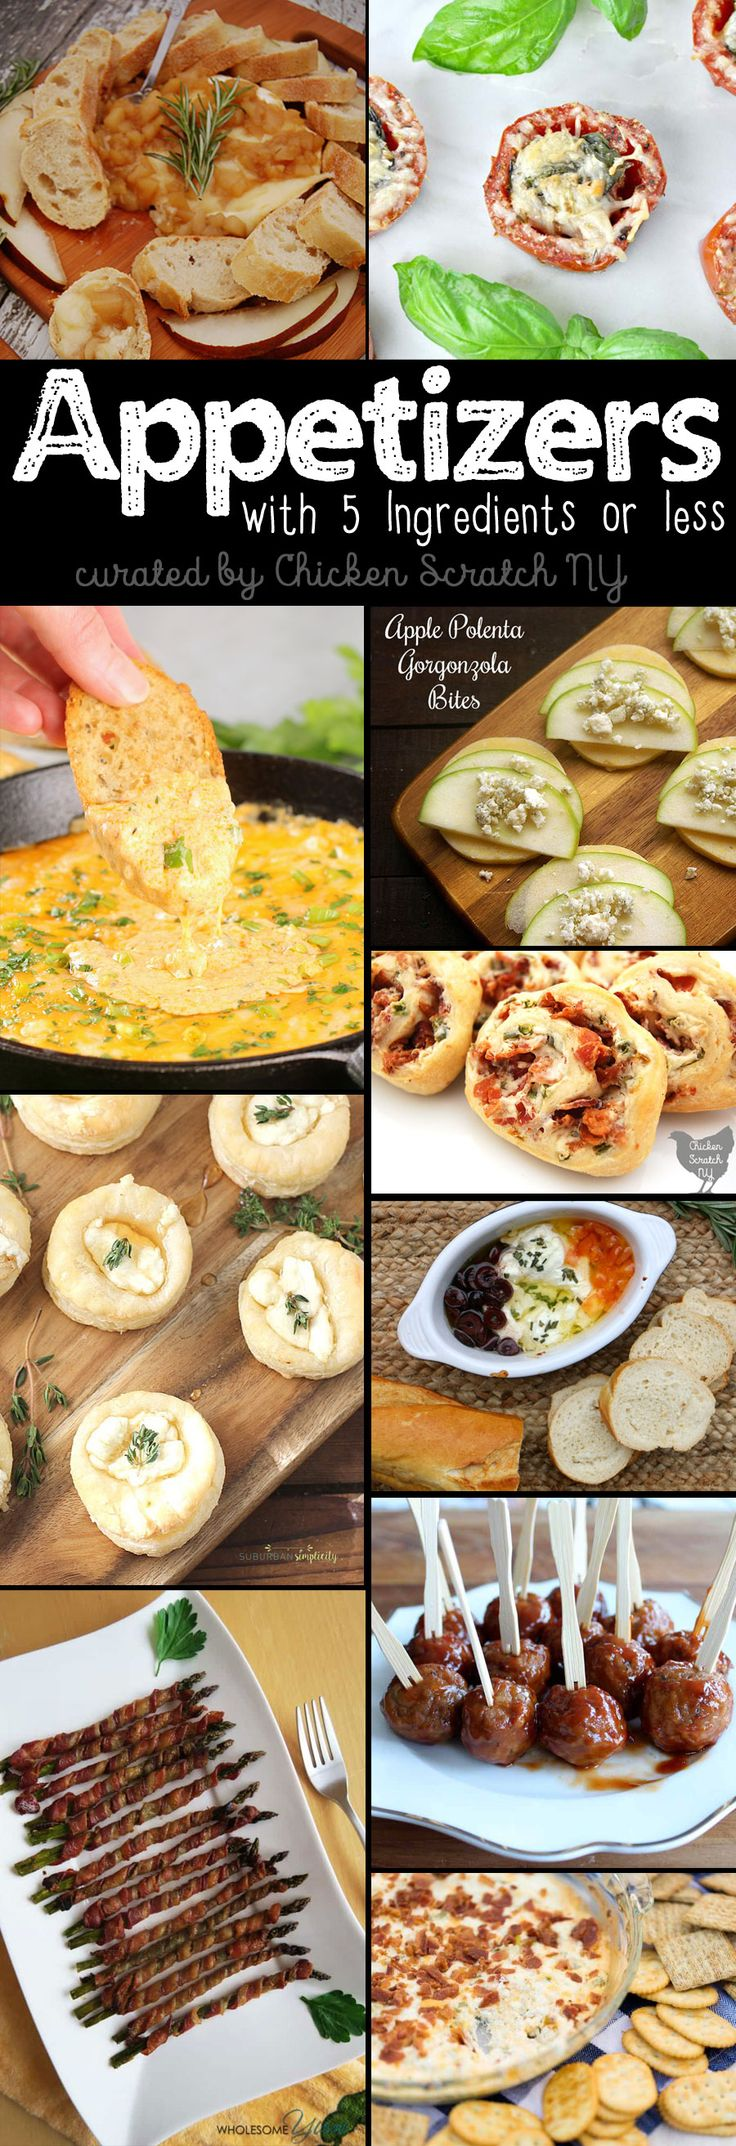 Easy appetizer recipes with 5 ingredients or less make sure your parties start off without a single hiccup and make entertaining fun again  via @AleciaCSNY